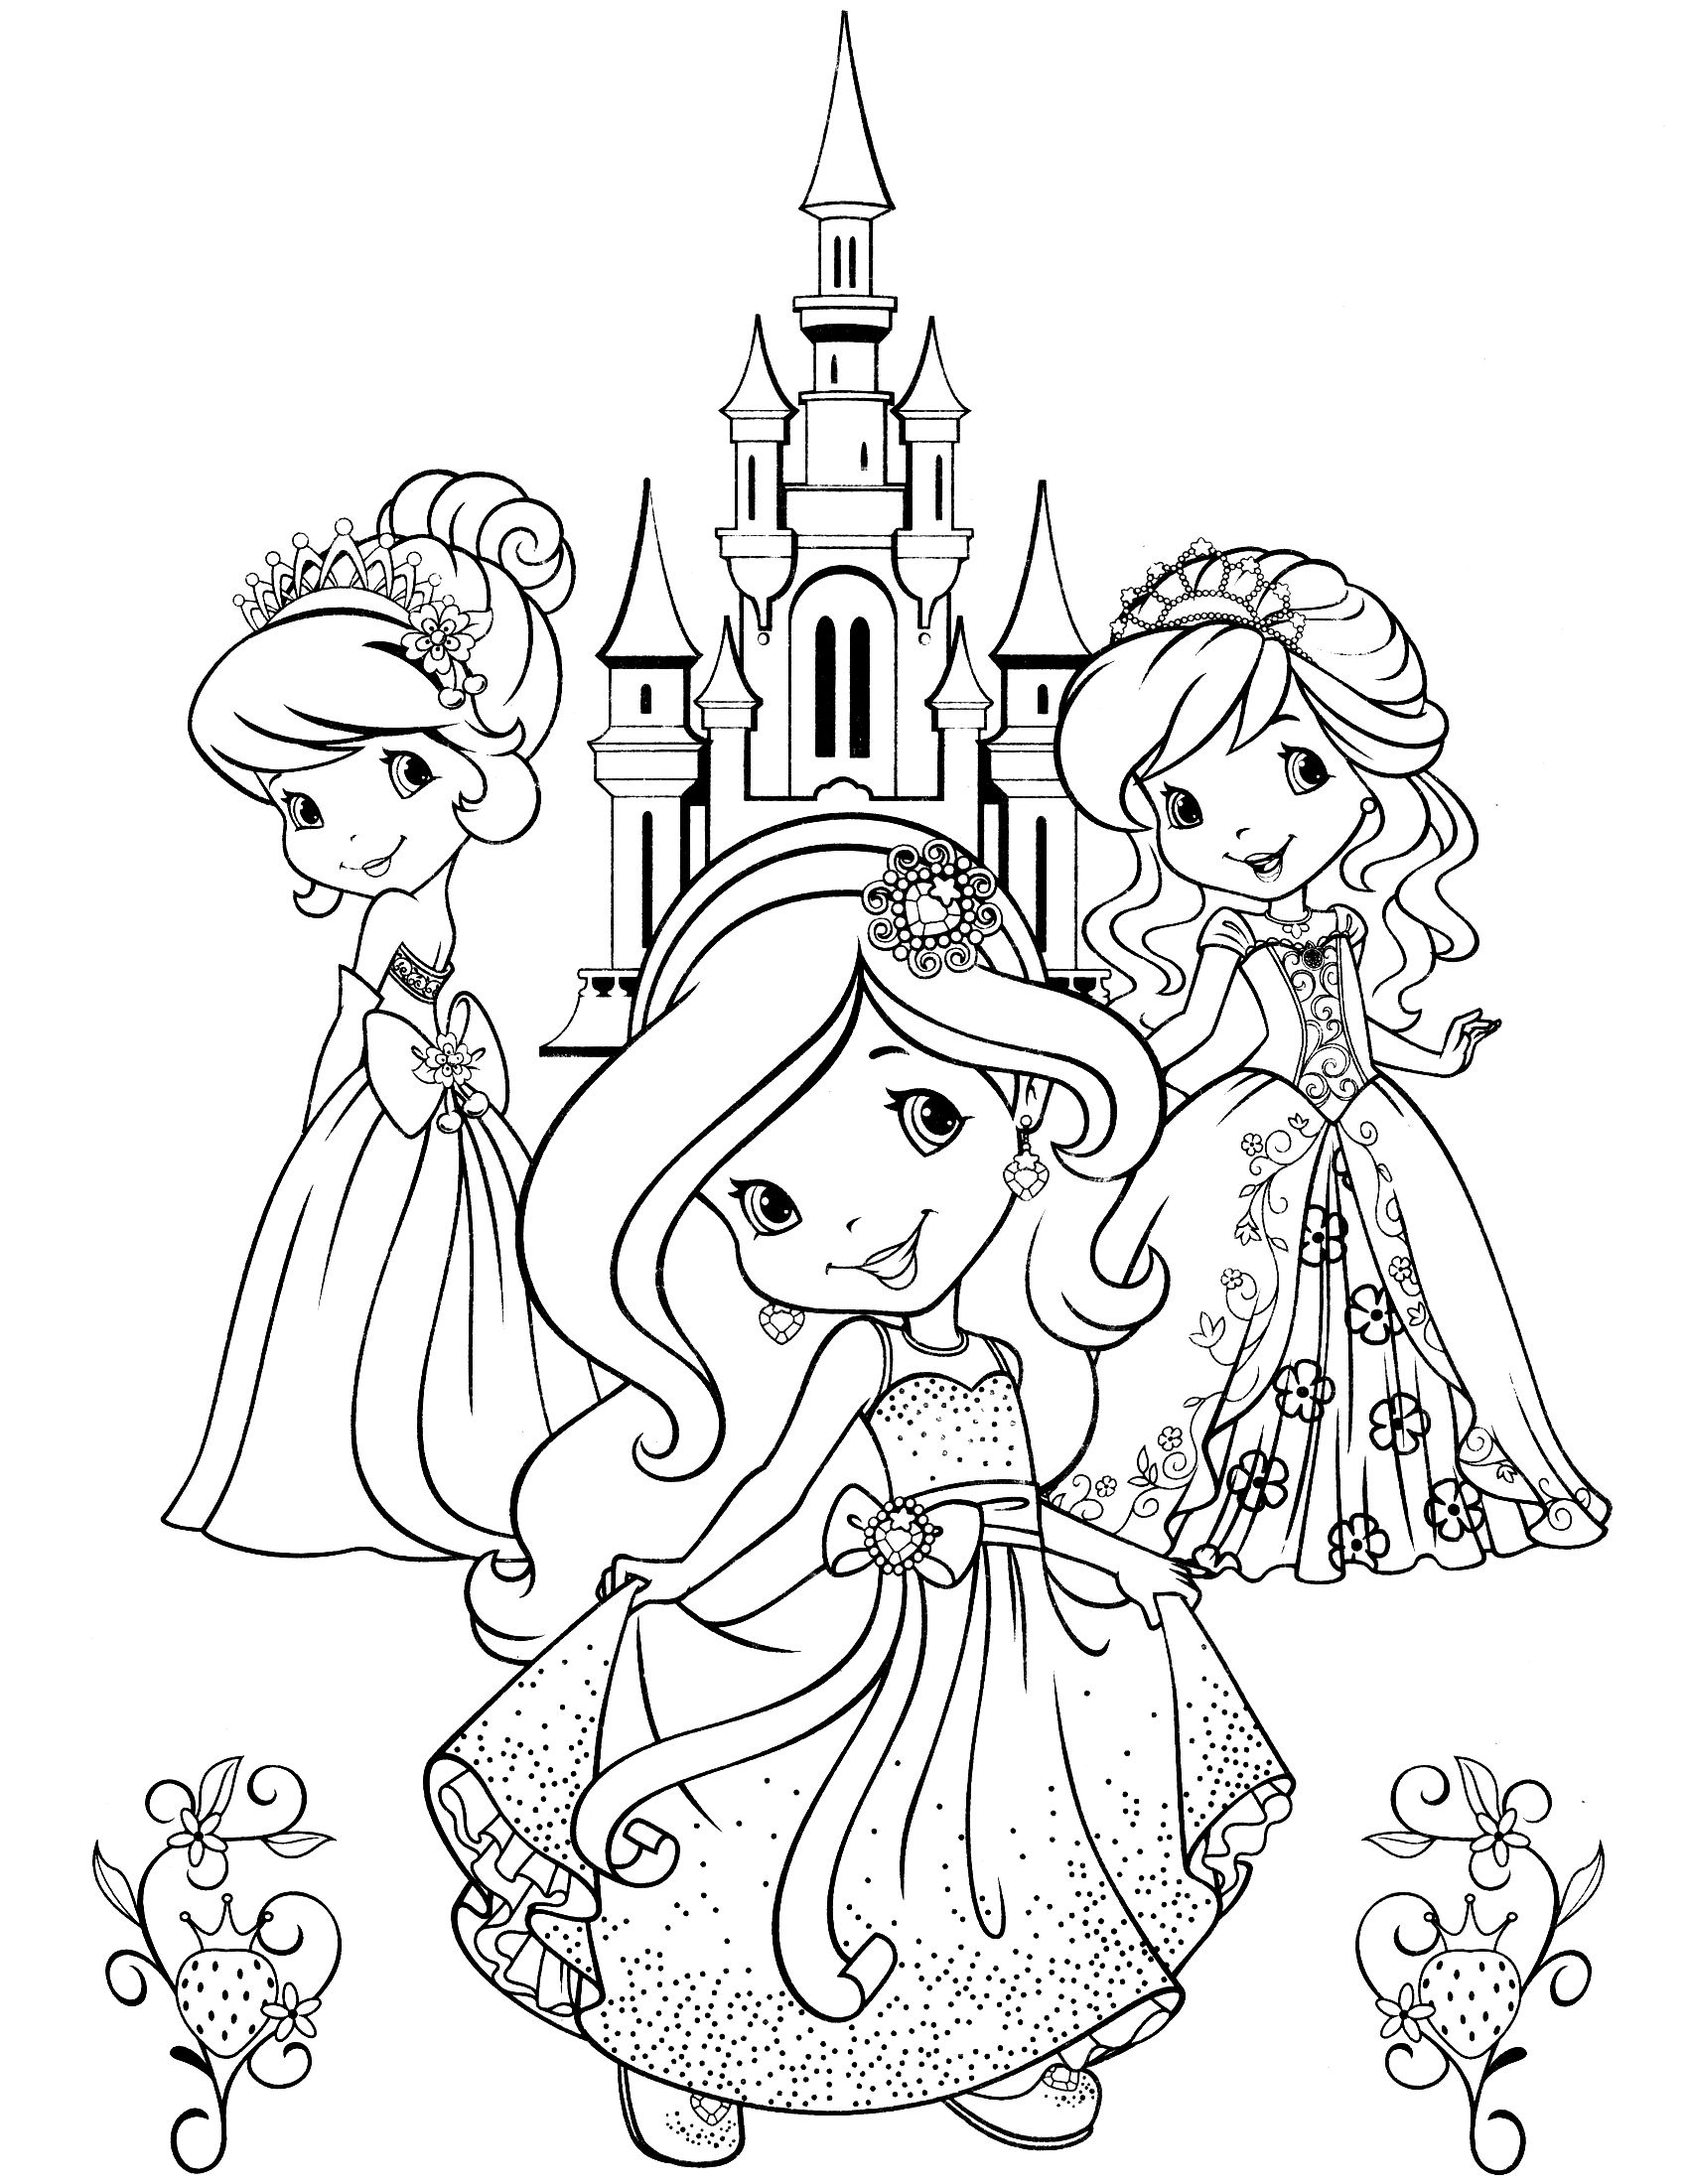 strawberry shortcake coloring page | Aniversario Paloma | Pinterest ...